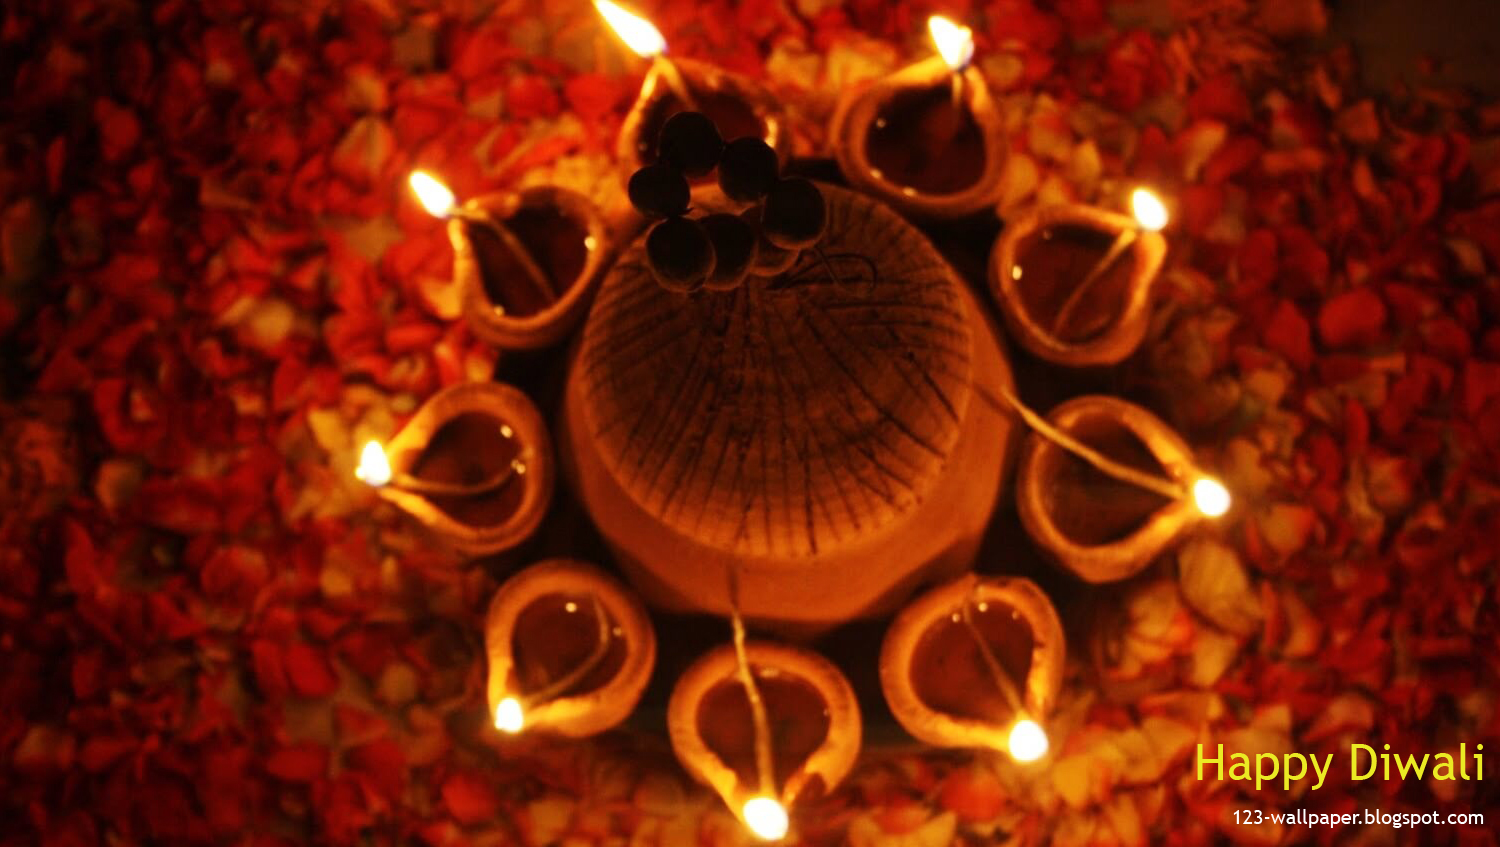 Happy Diwali Wallpapers And Backgrounds: Happy Diwali Wallpapers & Diwali Wishes SMS 2015